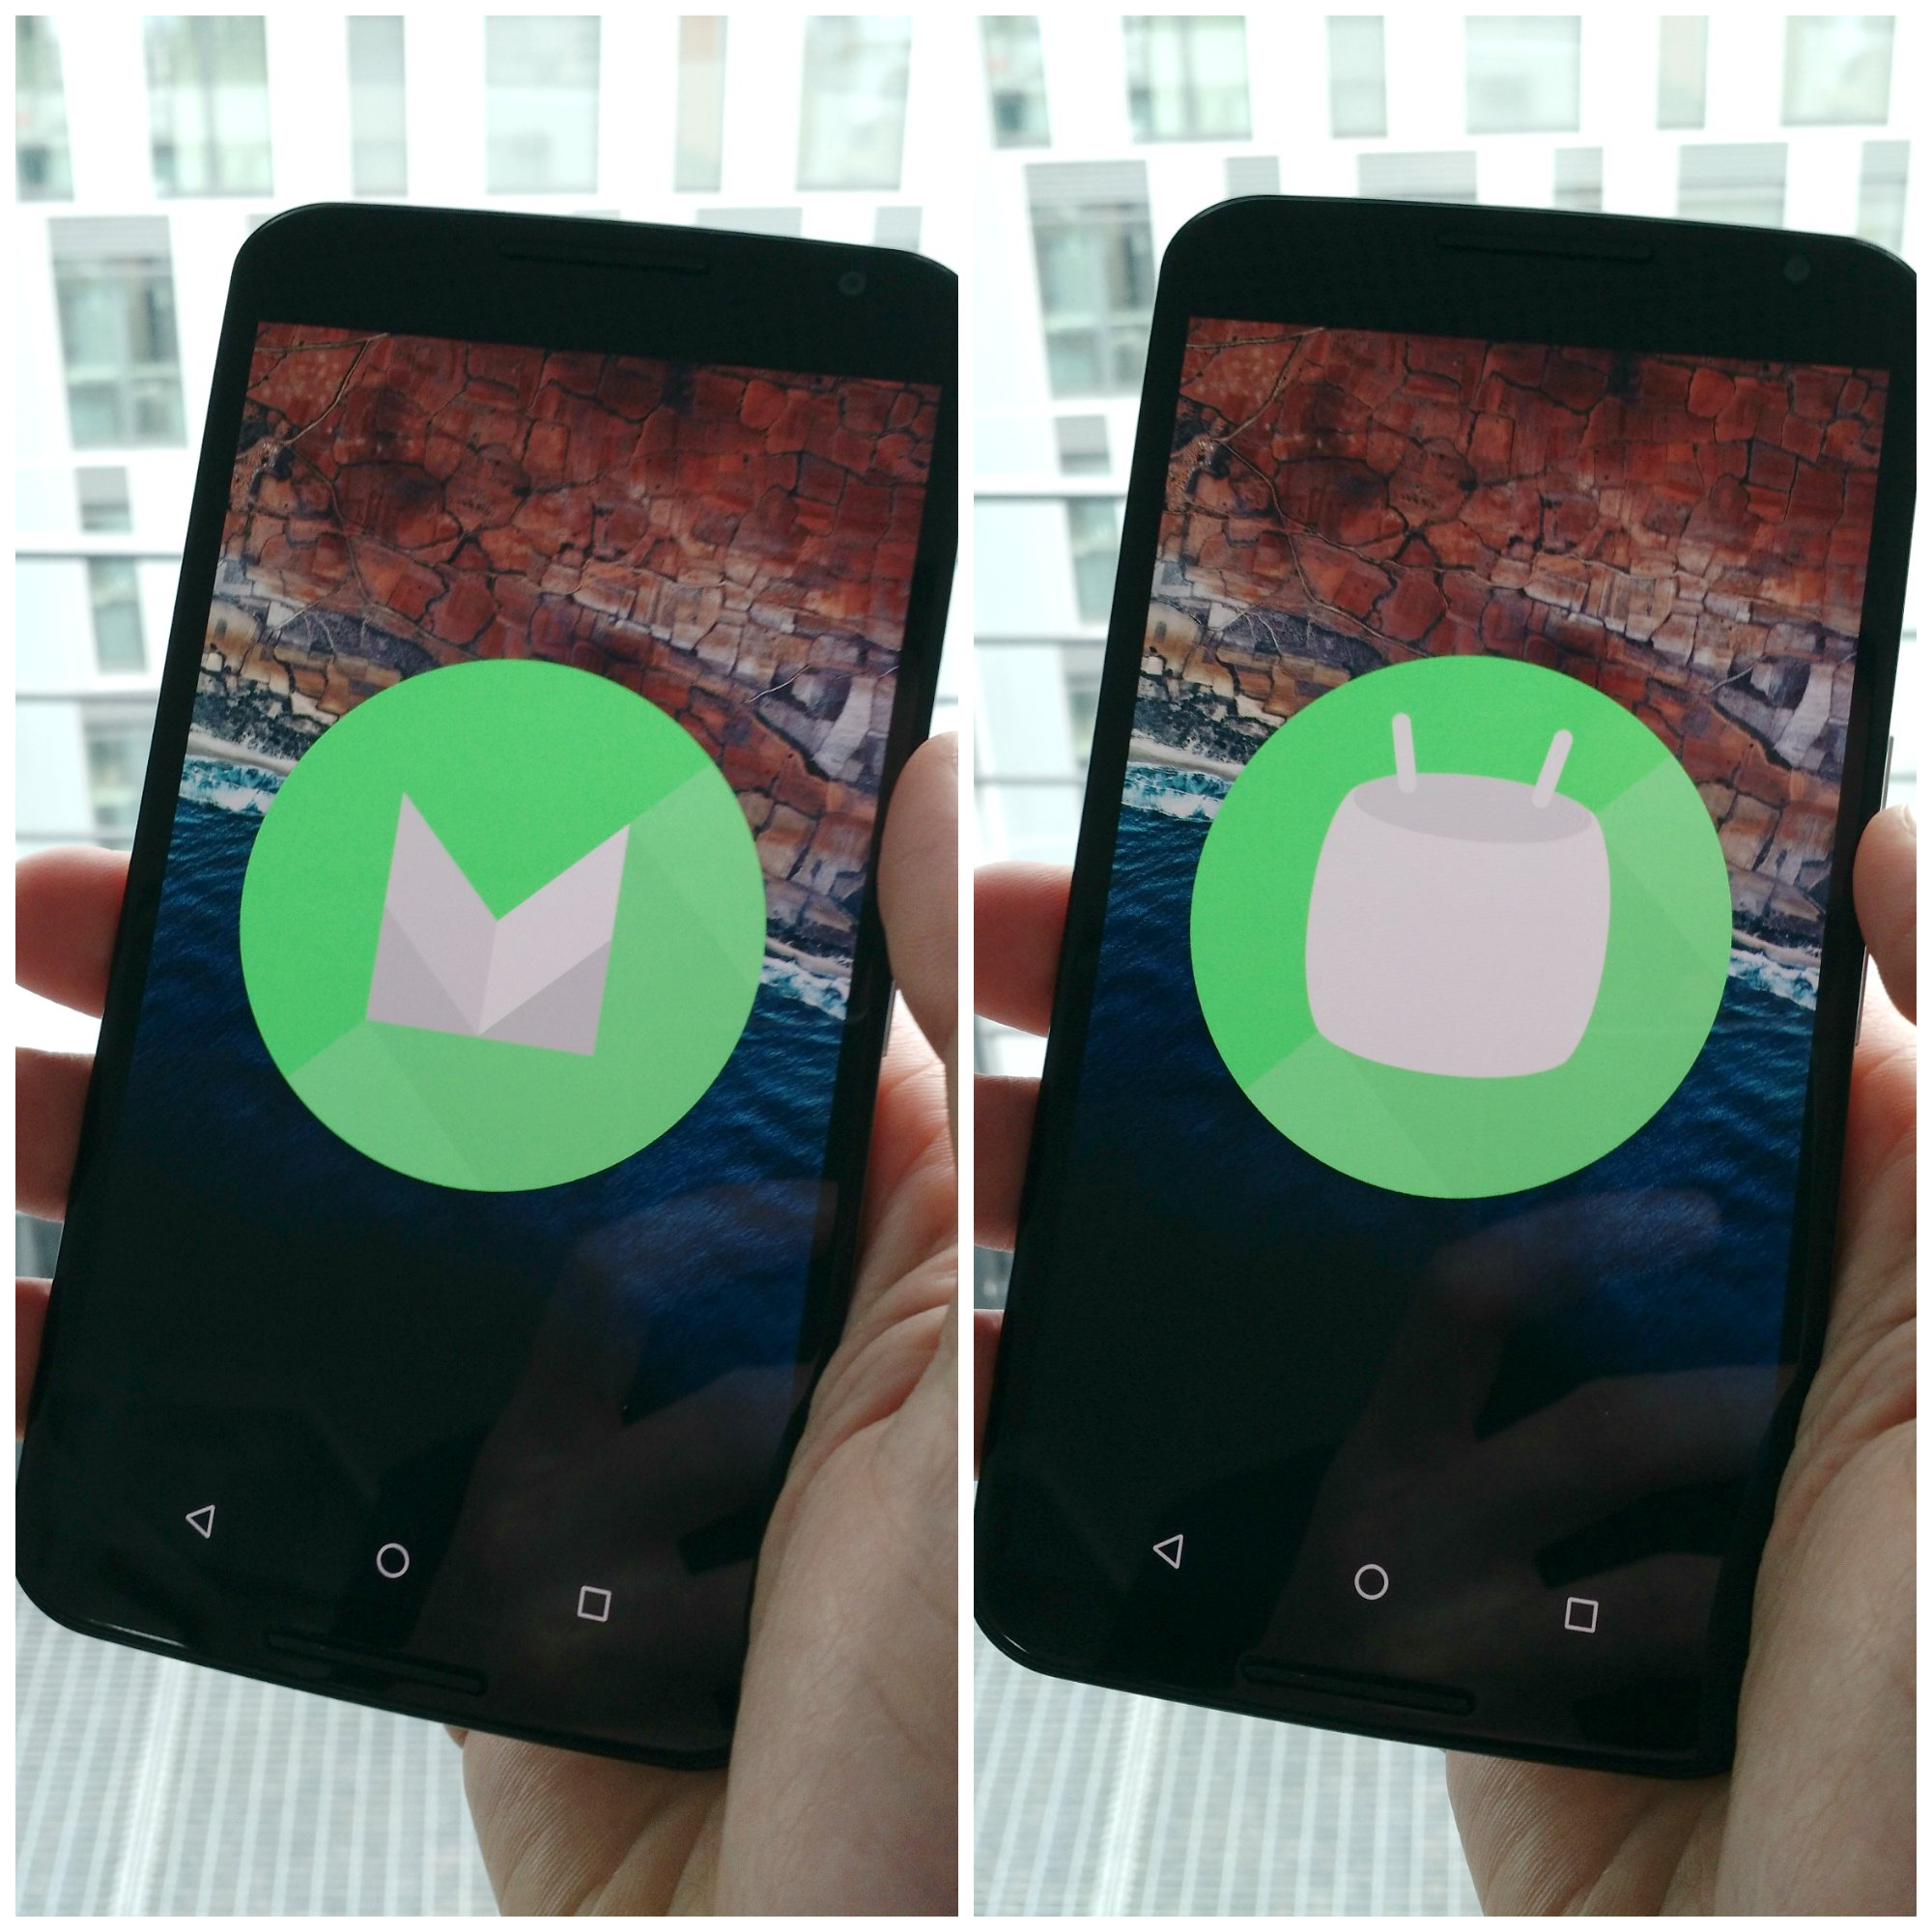 Android Marshmallow tips and tricks: over a dozen you should try ...